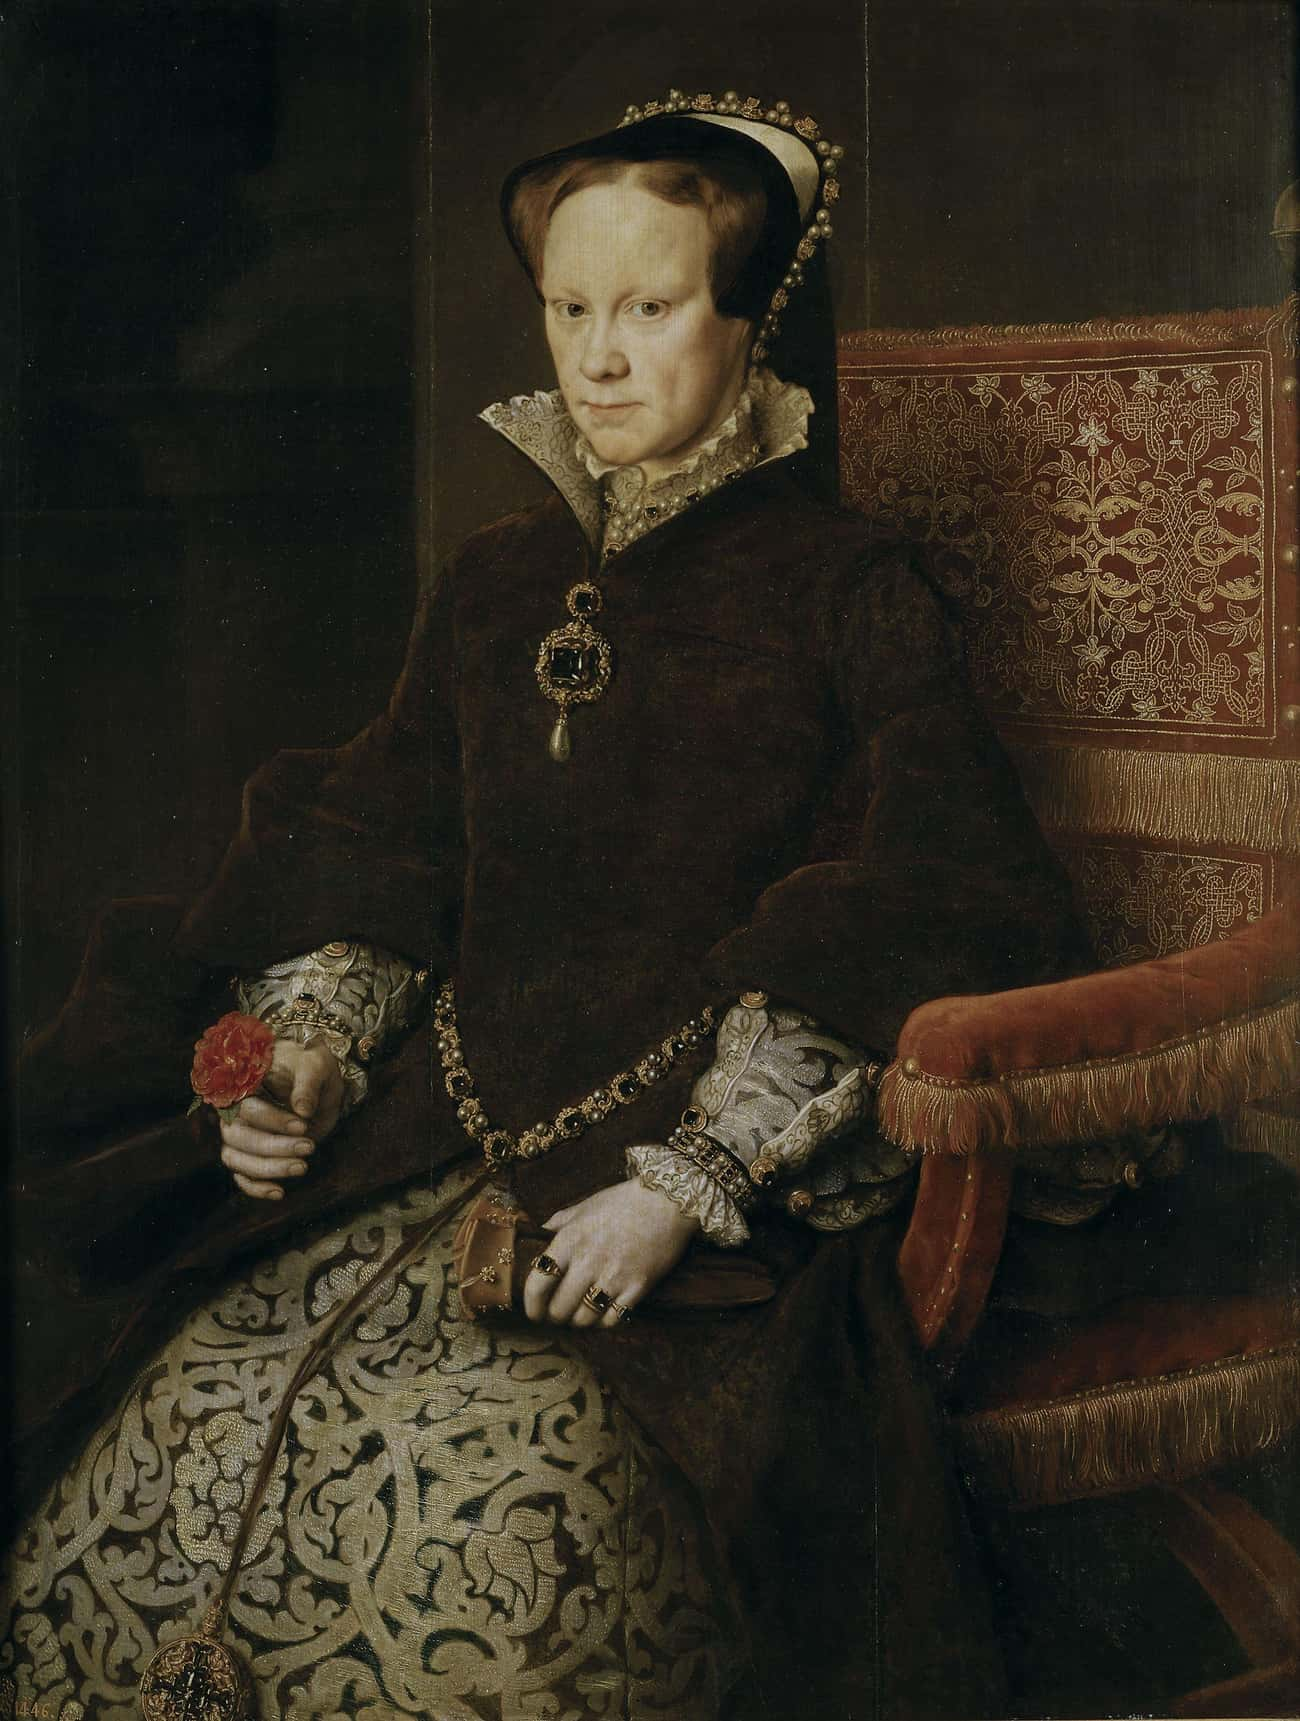 Mary I Viciously Persecuted Pr is listed (or ranked) 4 on the list The Most Ruthless Queens And Female Rulers Of All Time